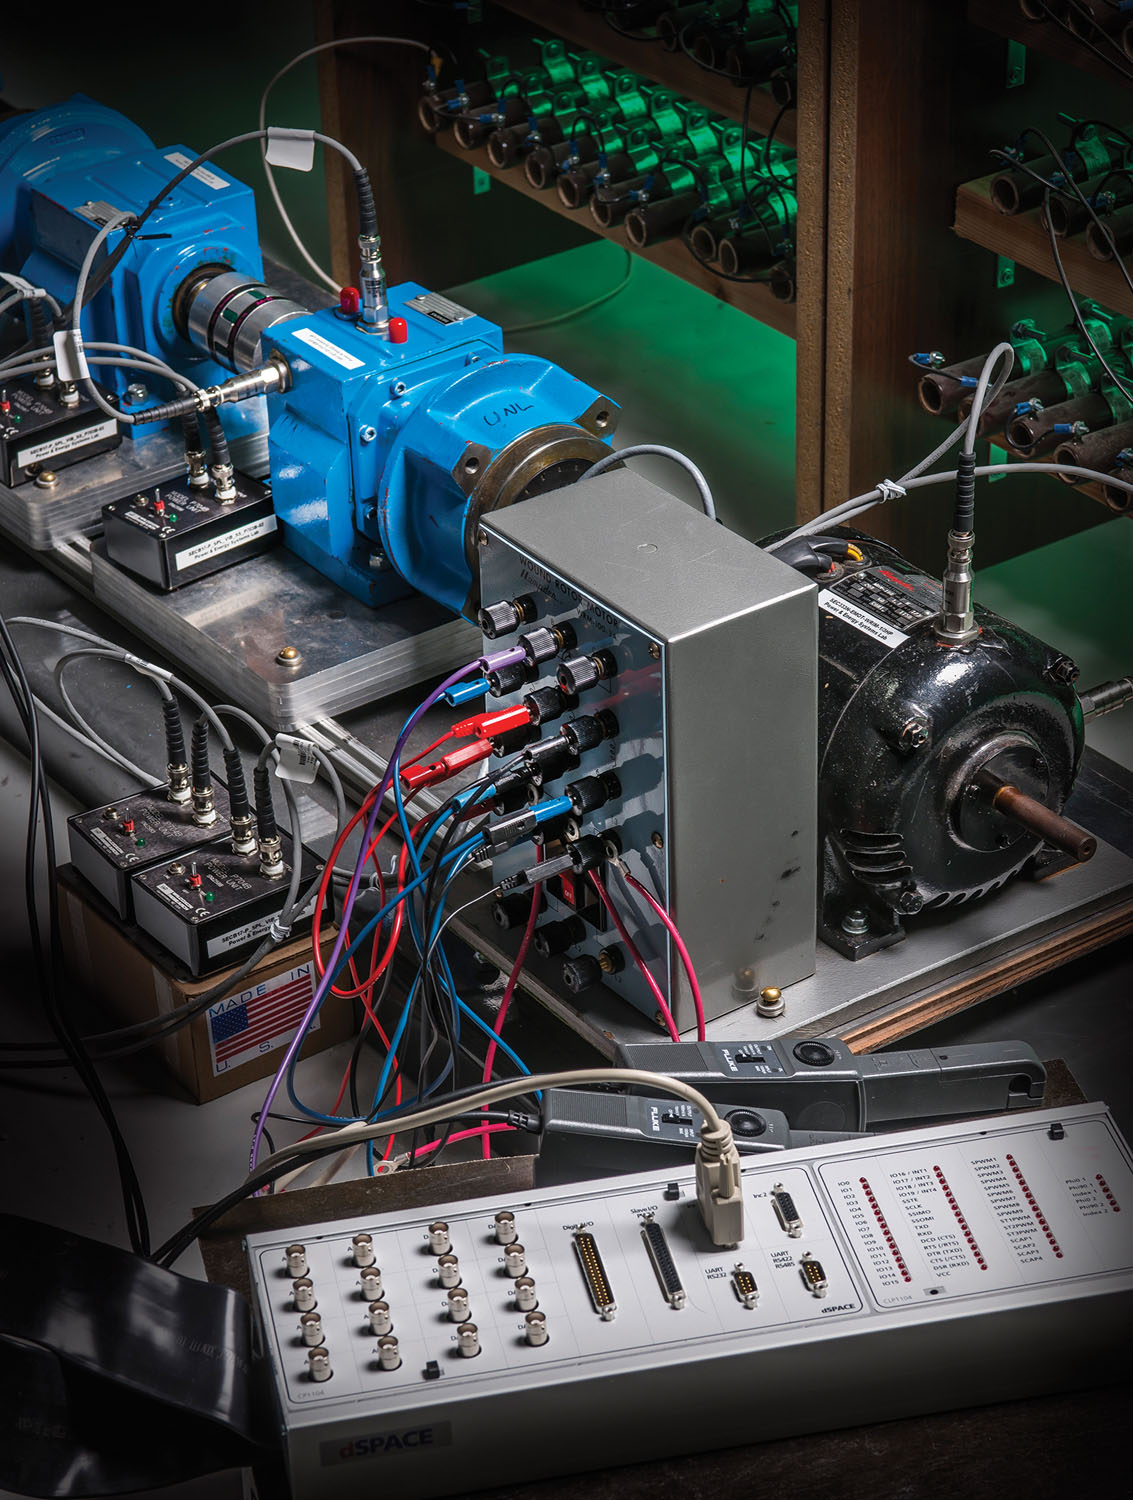 Test gearbox and data acquisition system